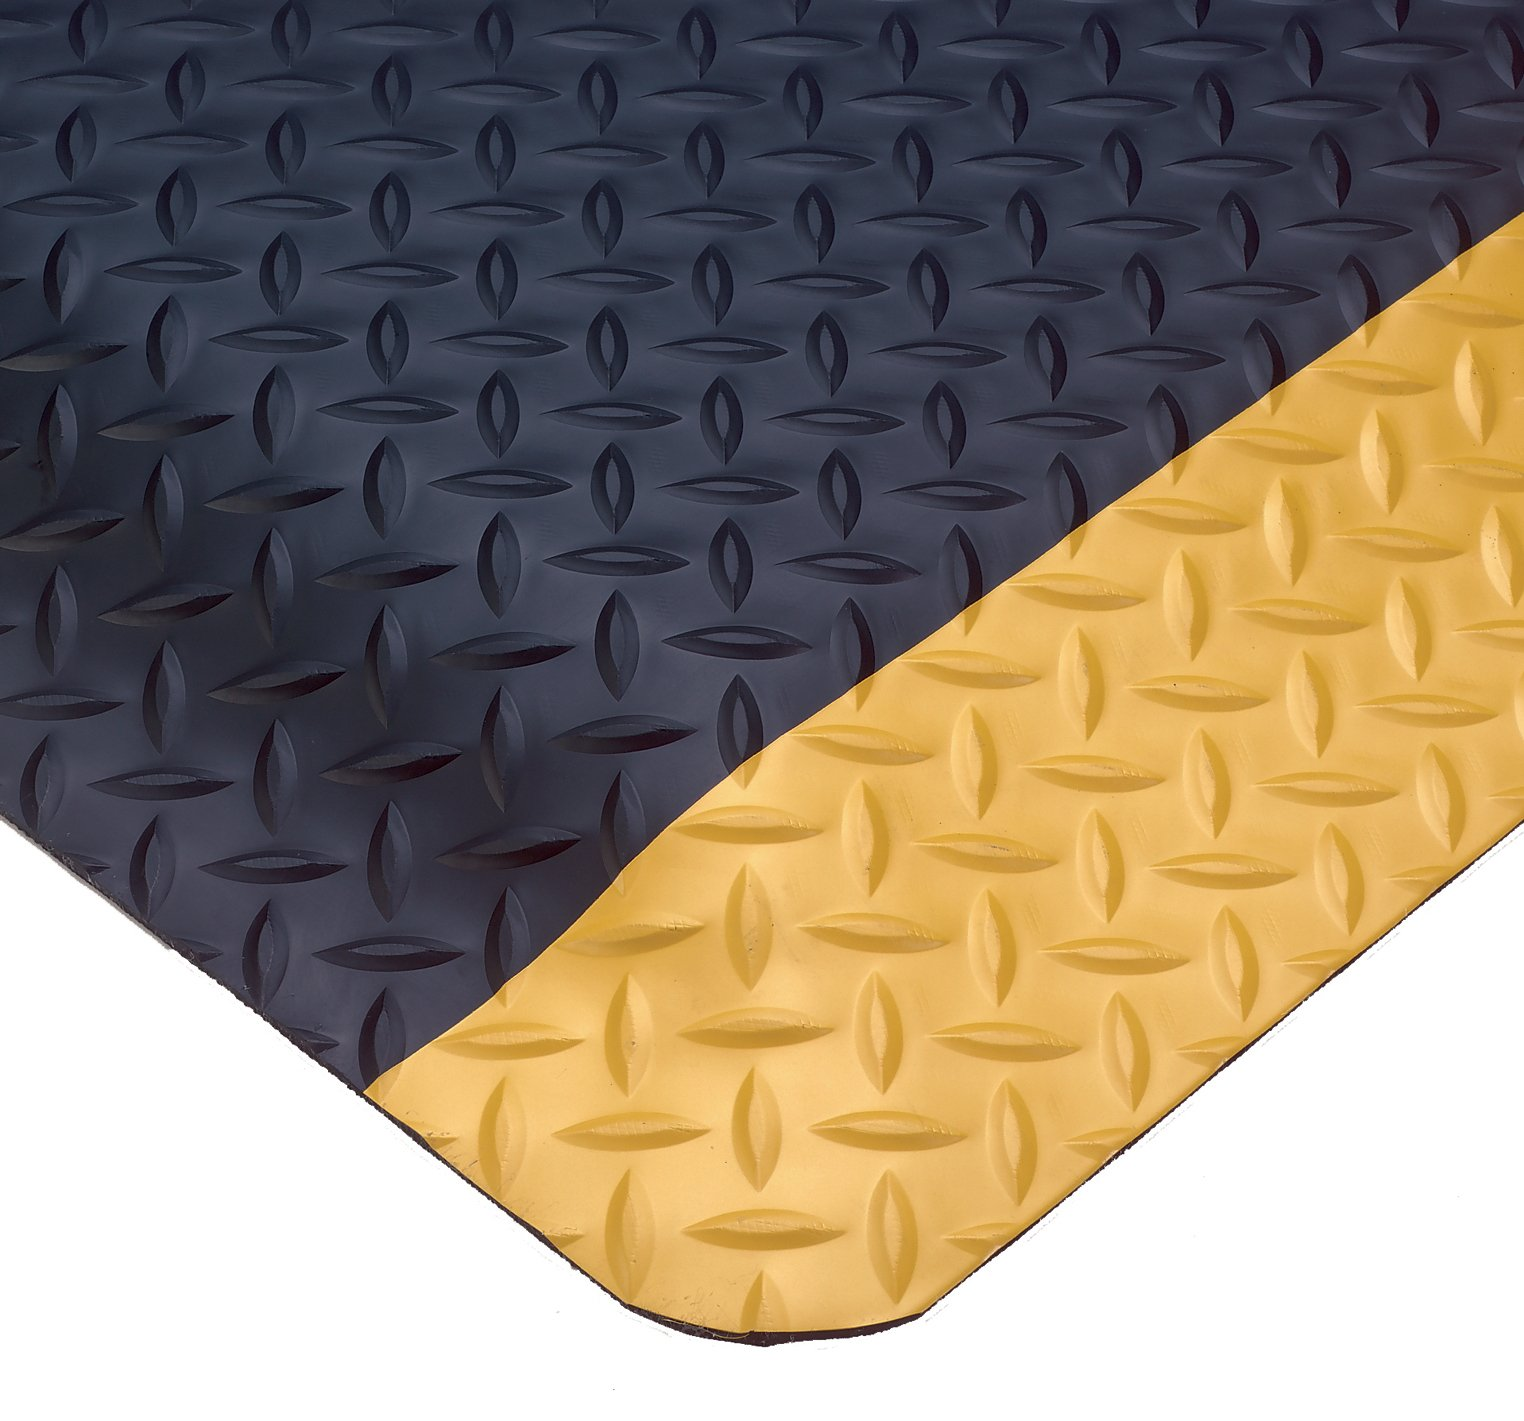 Wearwell PVC 414 UltraSoft Diamond-Plate Heavy Duty Anti-Fatigue Mat, Safety Beveled Edges, for Dry Areas, 3' Width x 5' Length x 15/16'' Thickness, Black / Yellow